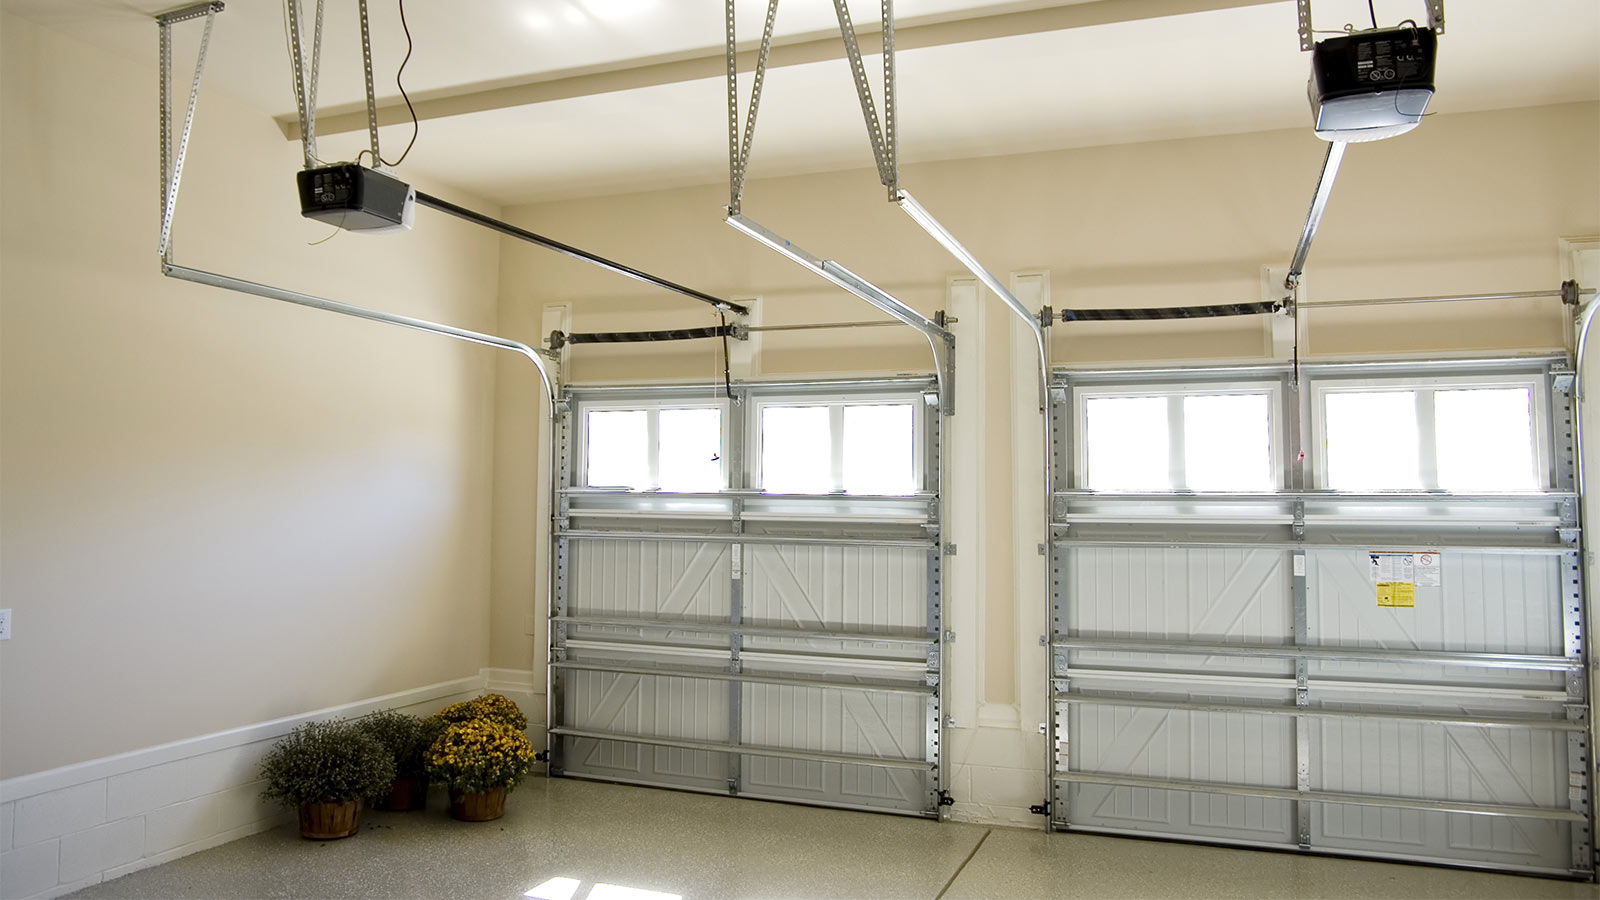 Sectional Garage Doors from Electric Gates Southend suppliers.